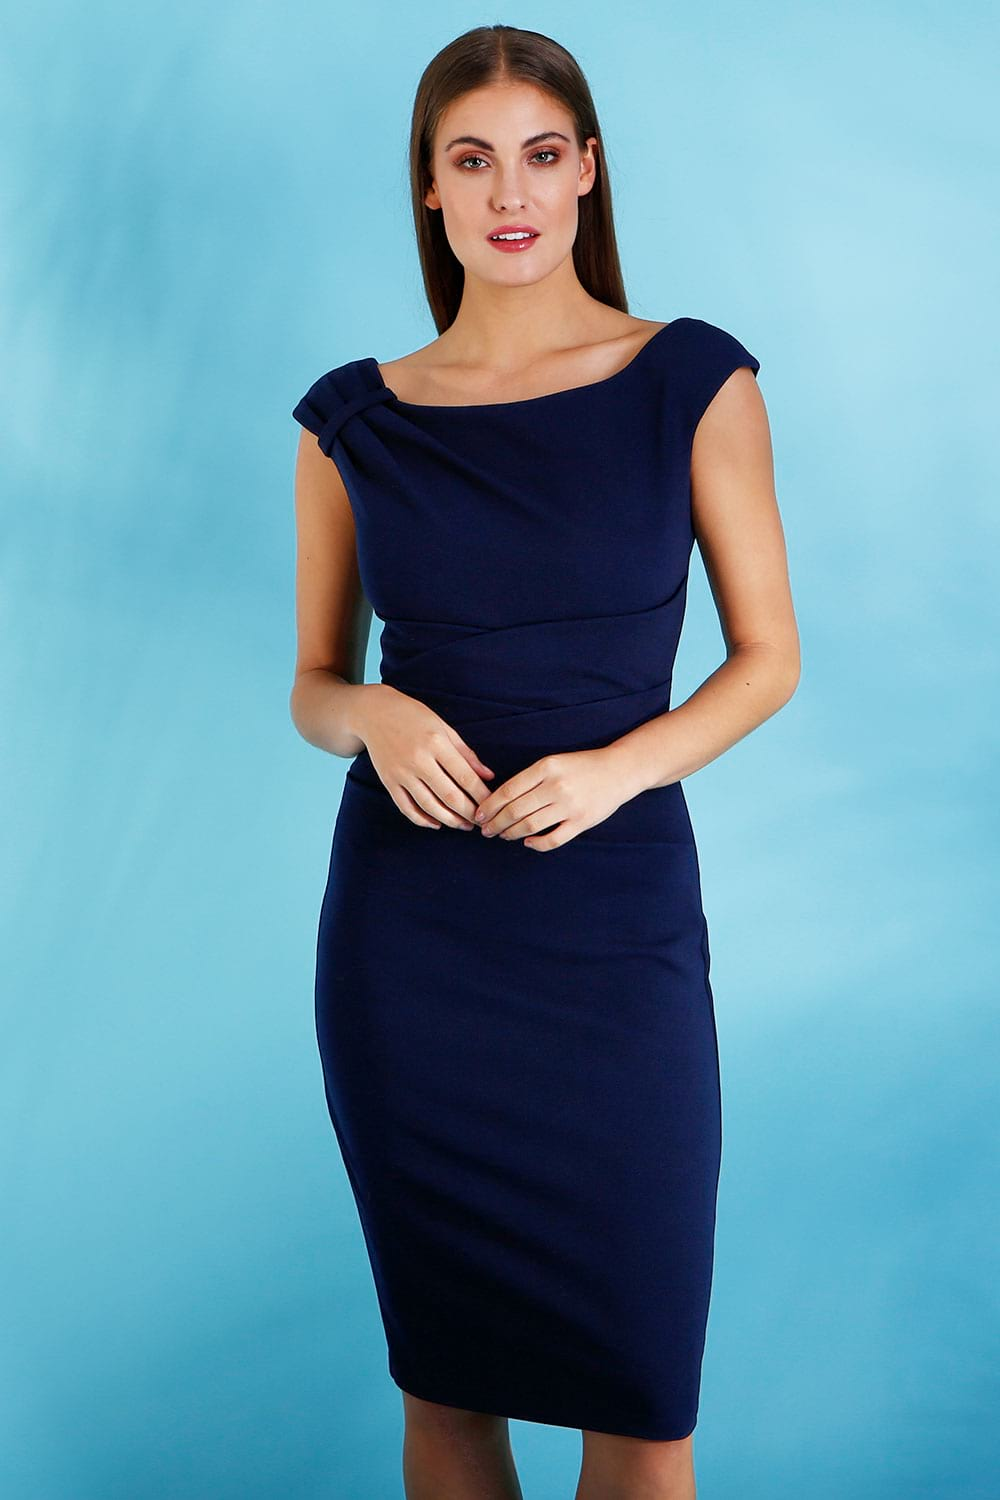 Hybrid Fashion 1287 Kelsey Navy Pencil Dress